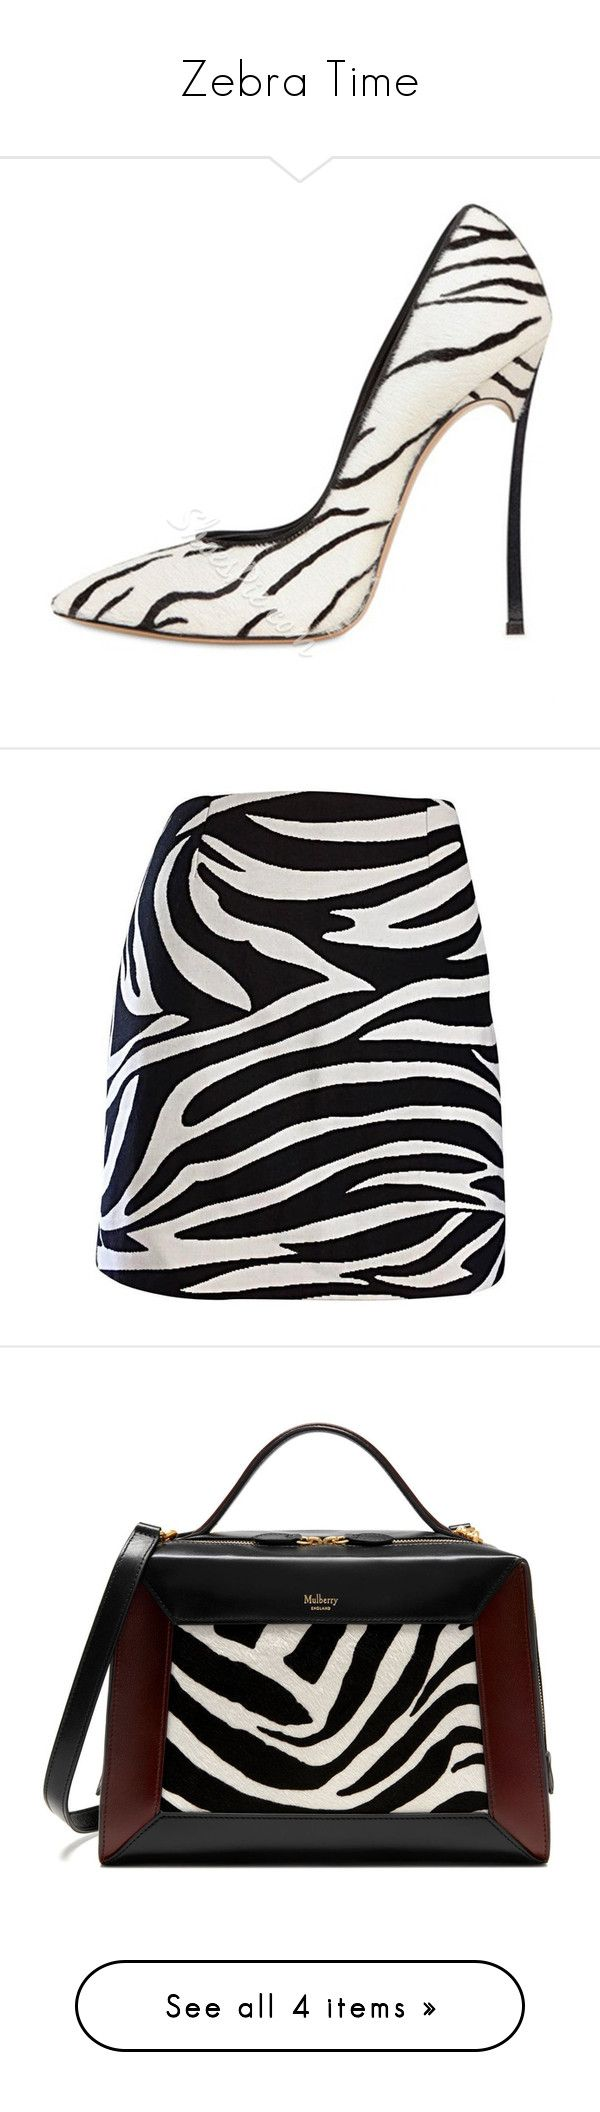 """Zebra Time"" by antonellamar1012 ❤ liked on Polyvore featuring shoes, pumps, stiletto heel pumps, zebra print pumps, zebra shoes, pointed toe shoes, stiletto pumps, skirts, mini skirts and animal print"